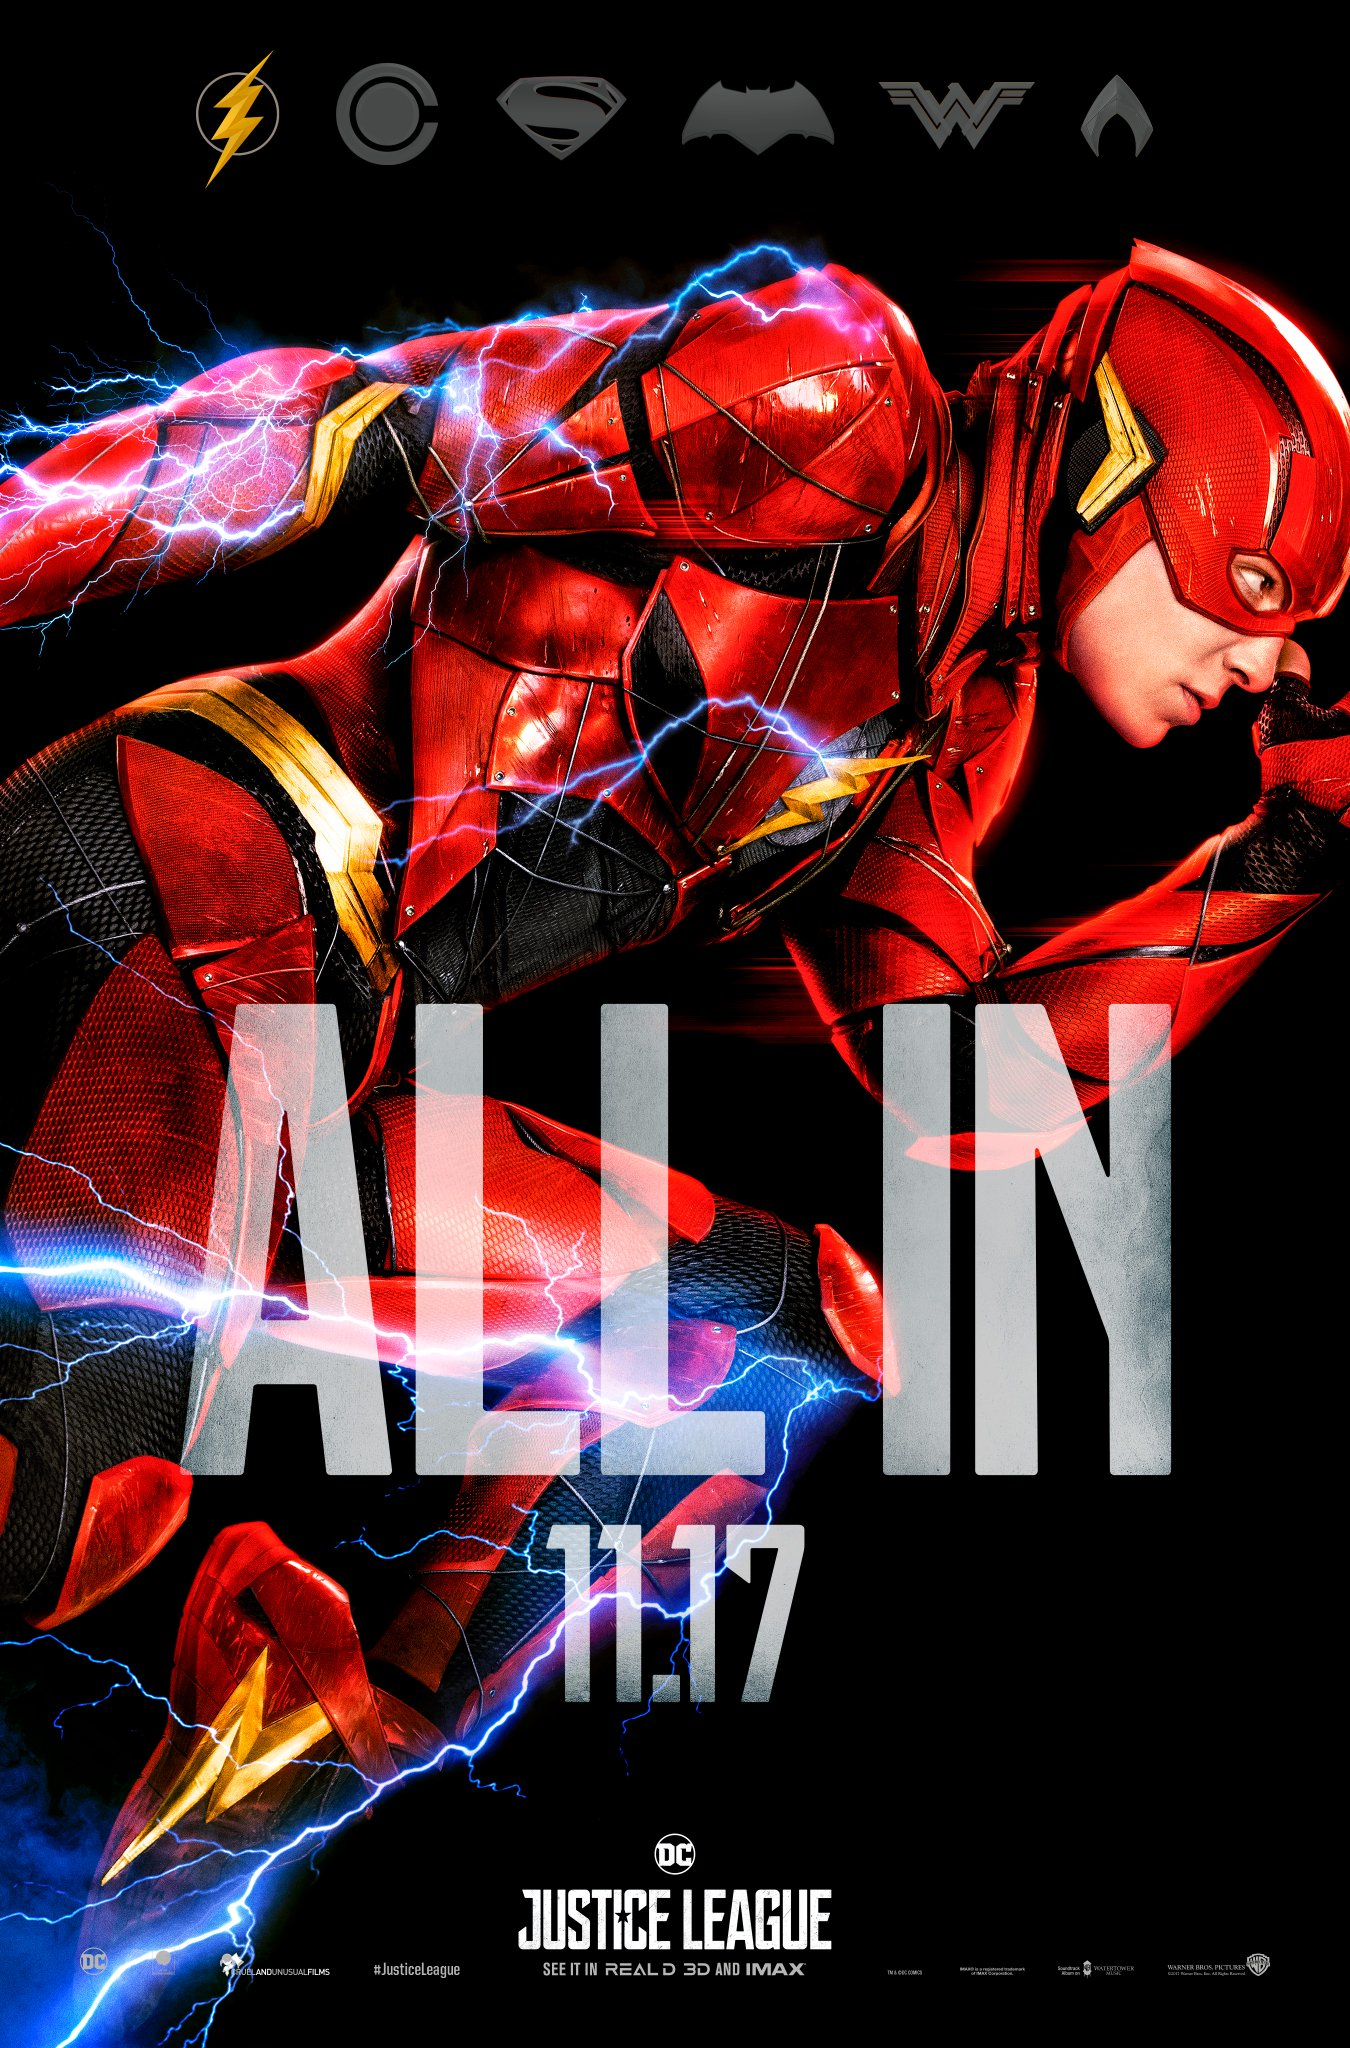 Justice League Movie Picha Justice League All In Poster